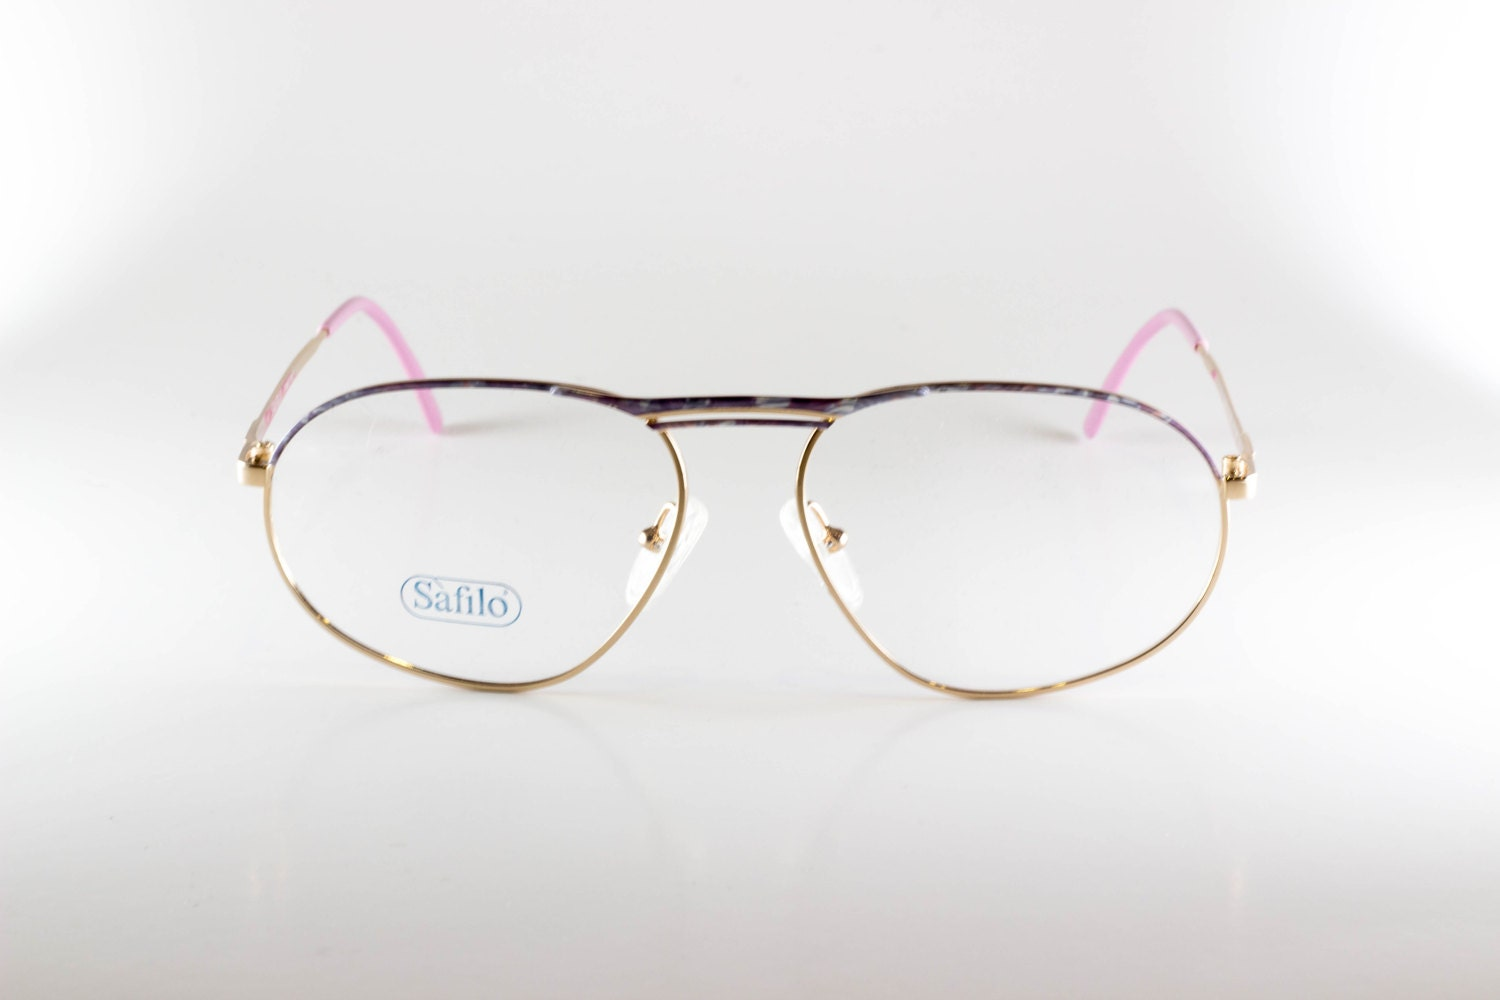 Safilo Linea D 200 48N Made In Italy CE Women\'s 56-15-140 Vintage ...